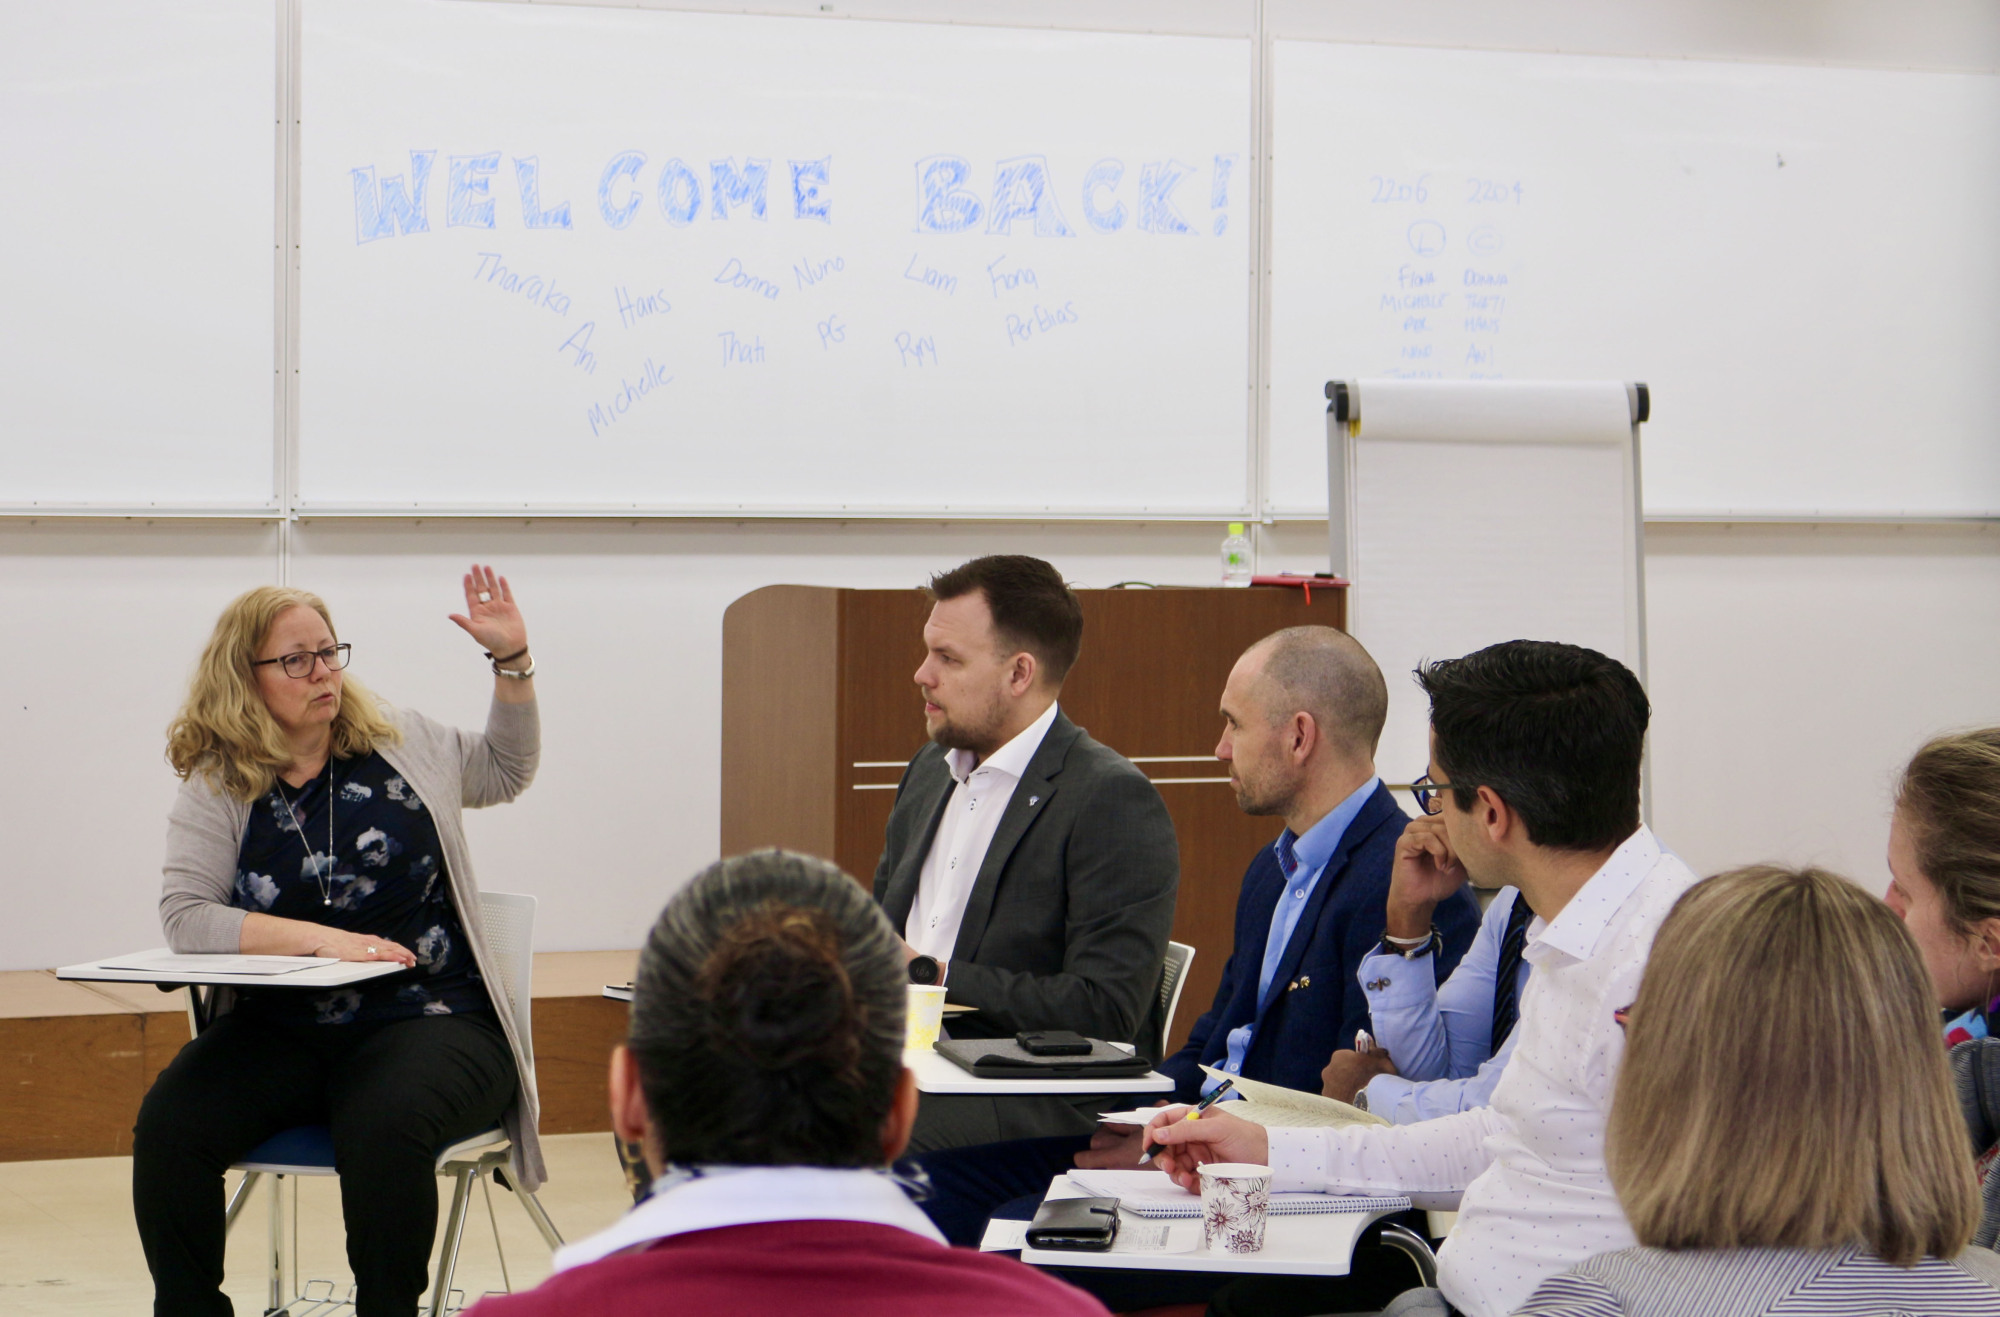 NCDA trainees participate in a group discussion earlier this month at Nippon Sport Science University in Tokyo's Setagaya Ward. | COURTESY OF NIPPON SPORT SCIENCE UNIVERSITY